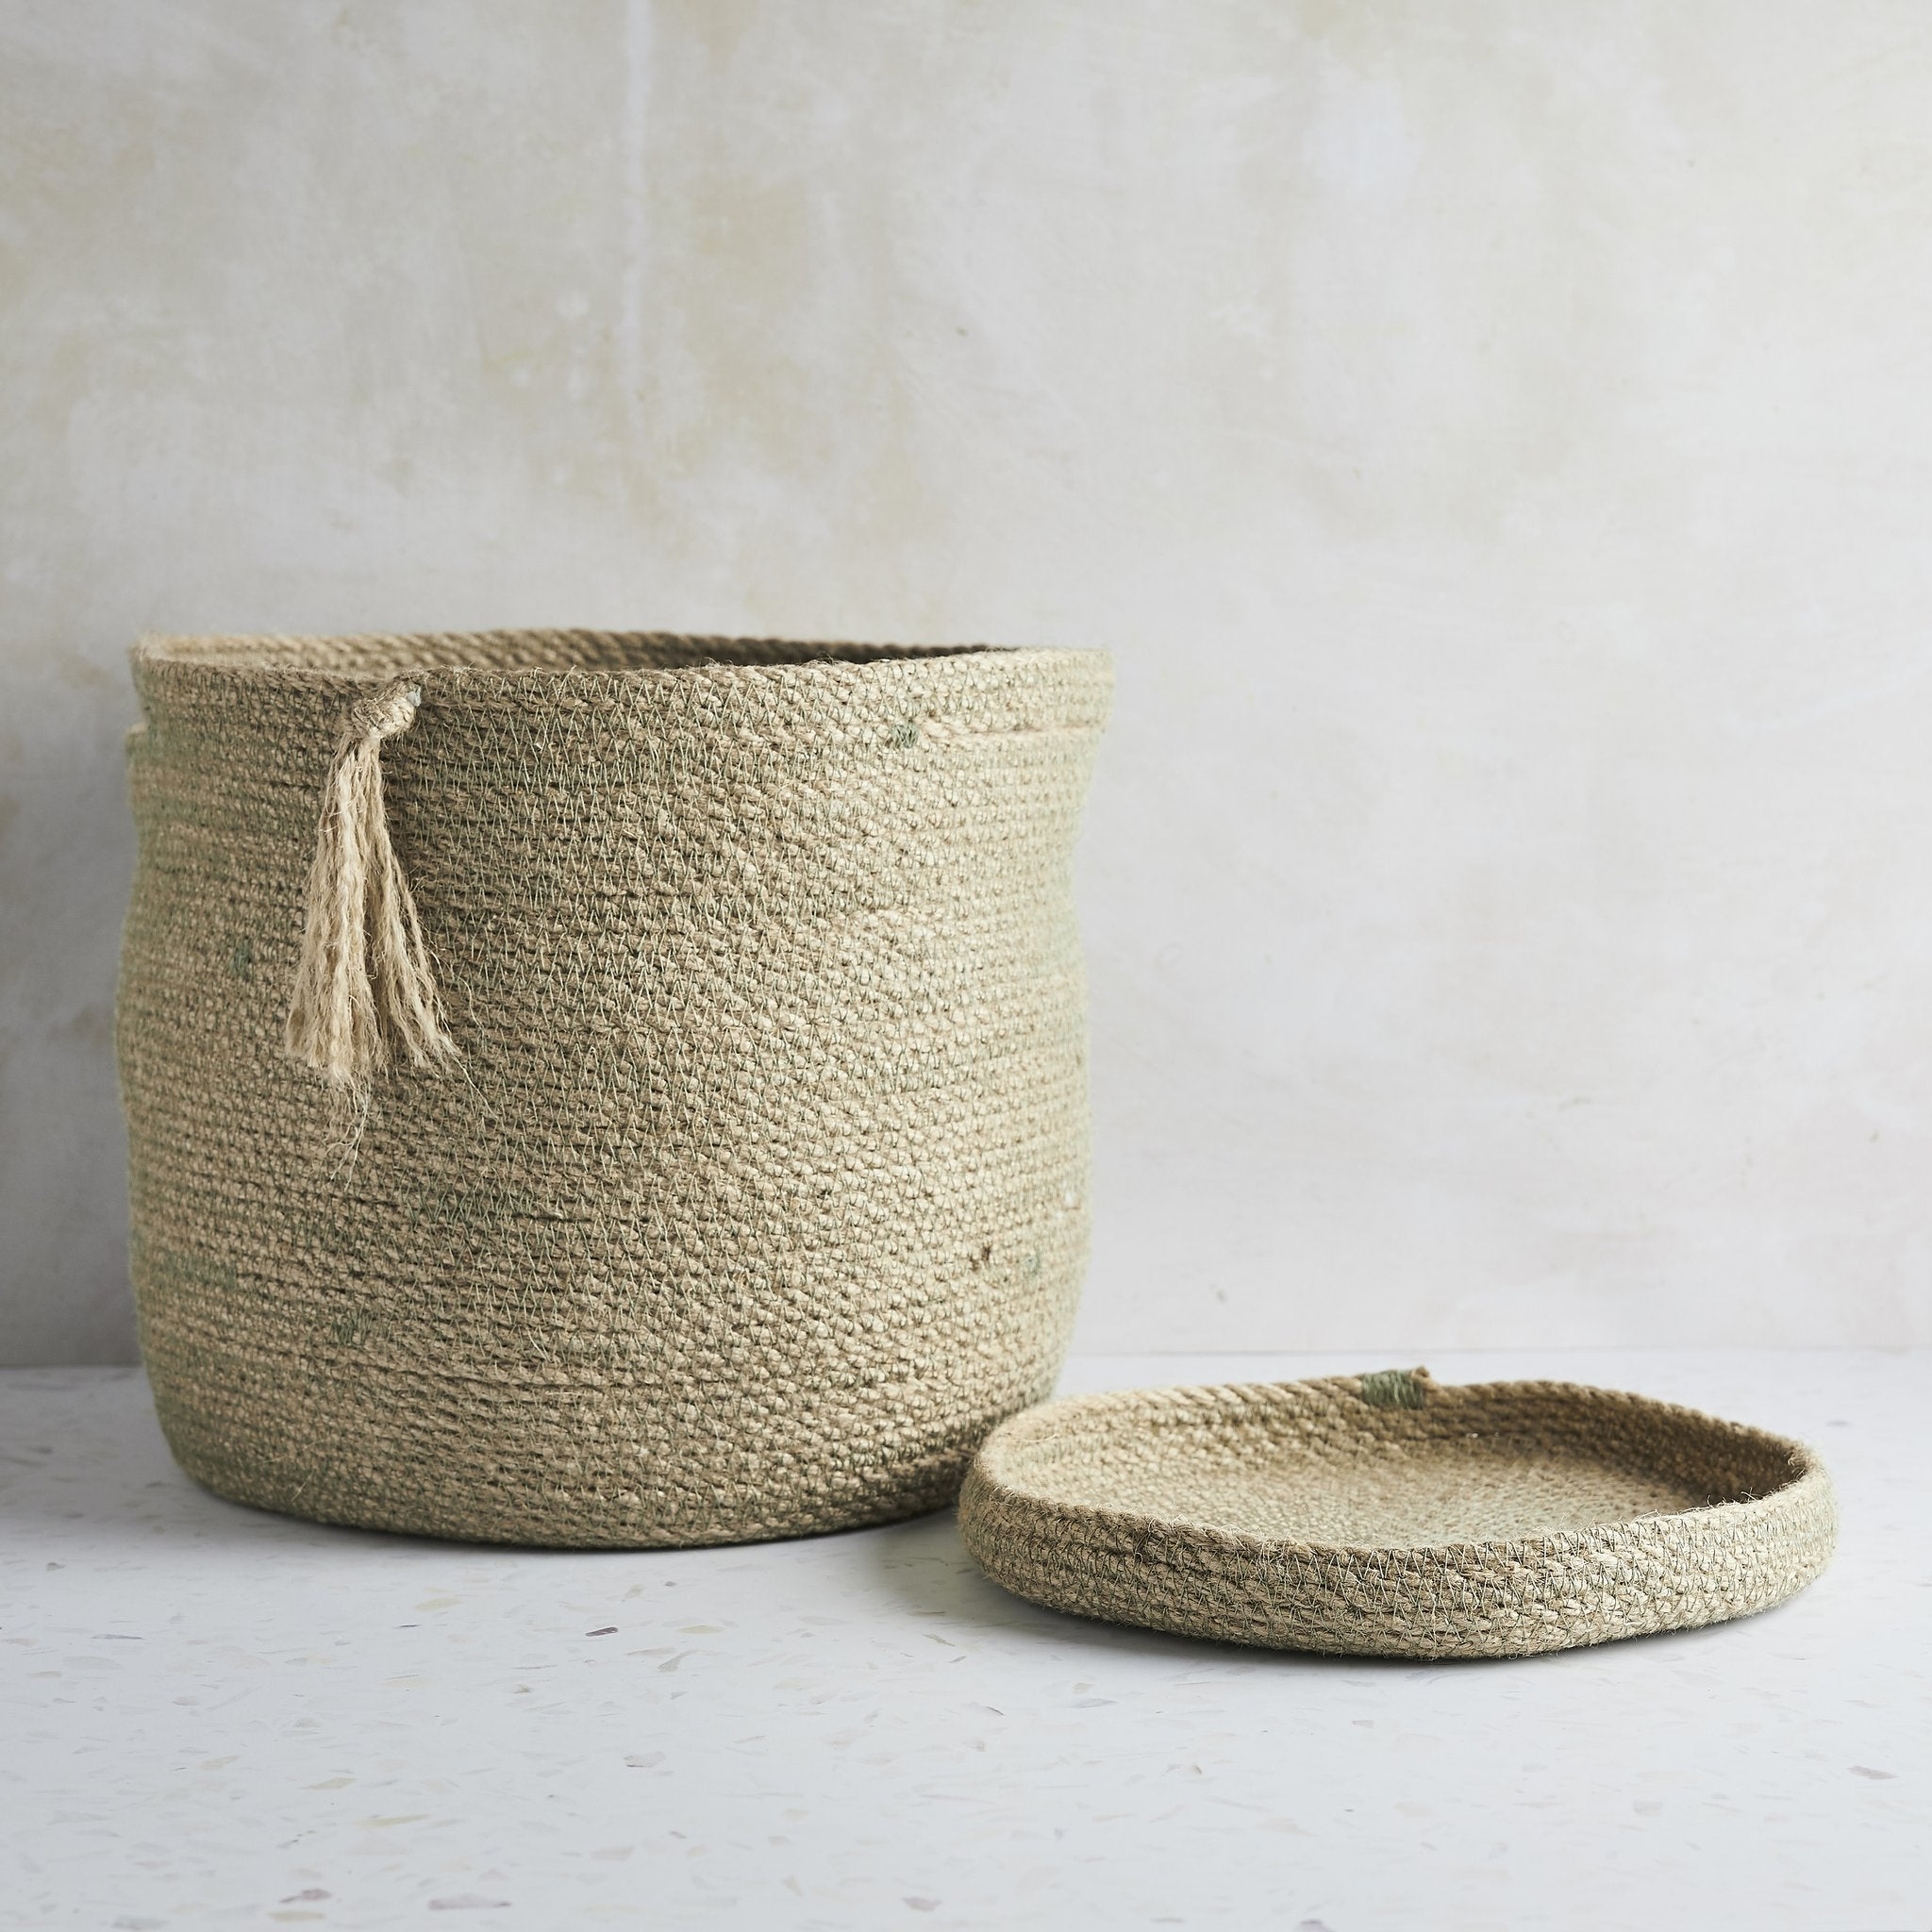 Eco-Twist trinket tray next to woven jute basket